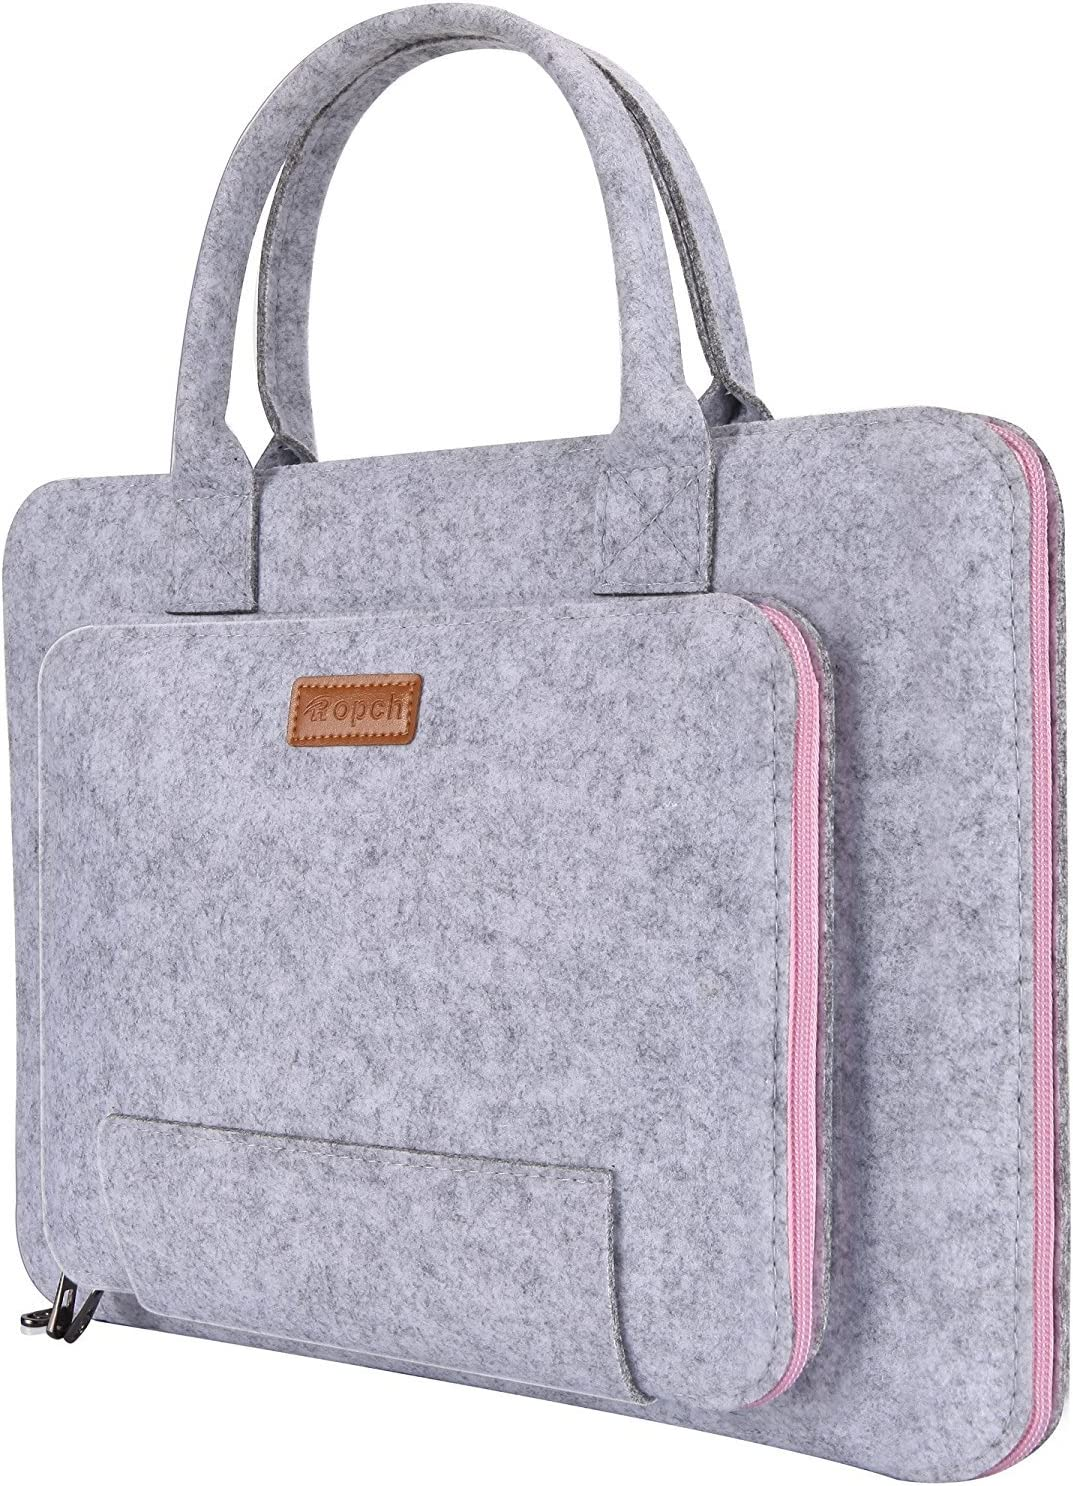 "Ropch Laptop Sleeve for 13.3 Inch MacBook Pro / Pro Retina, Felt with Handle and Pocket Laptop Bag Case Only for 13 13.3"" MacBook Pro / Pro Retina (2015-2016), Gray and Pink"